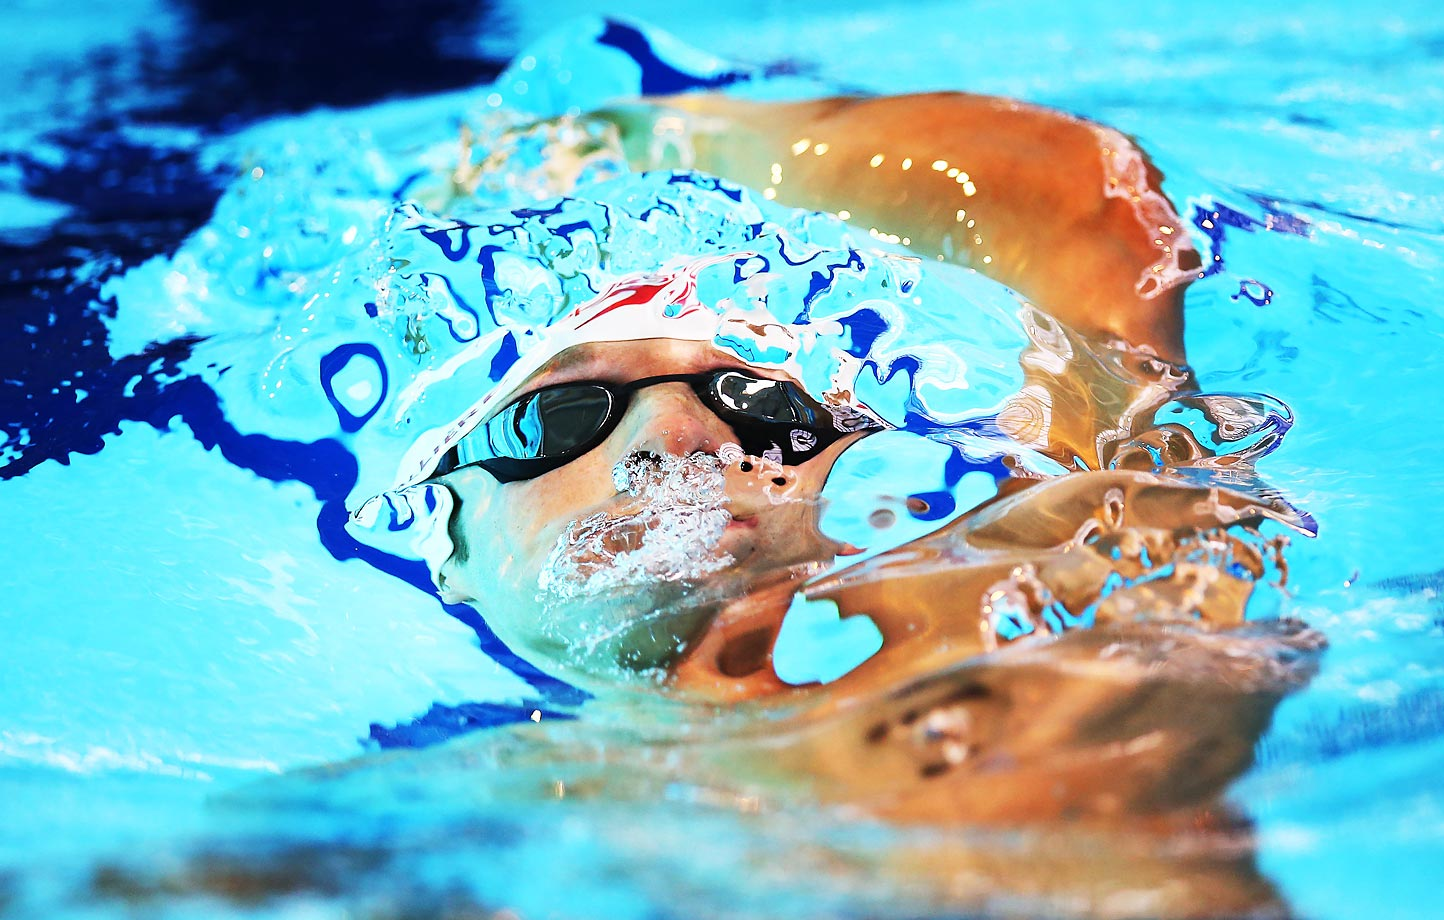 Jean-Michel Lavalliere during the IPC Swimming World Championships in Glasgow, Scotland.